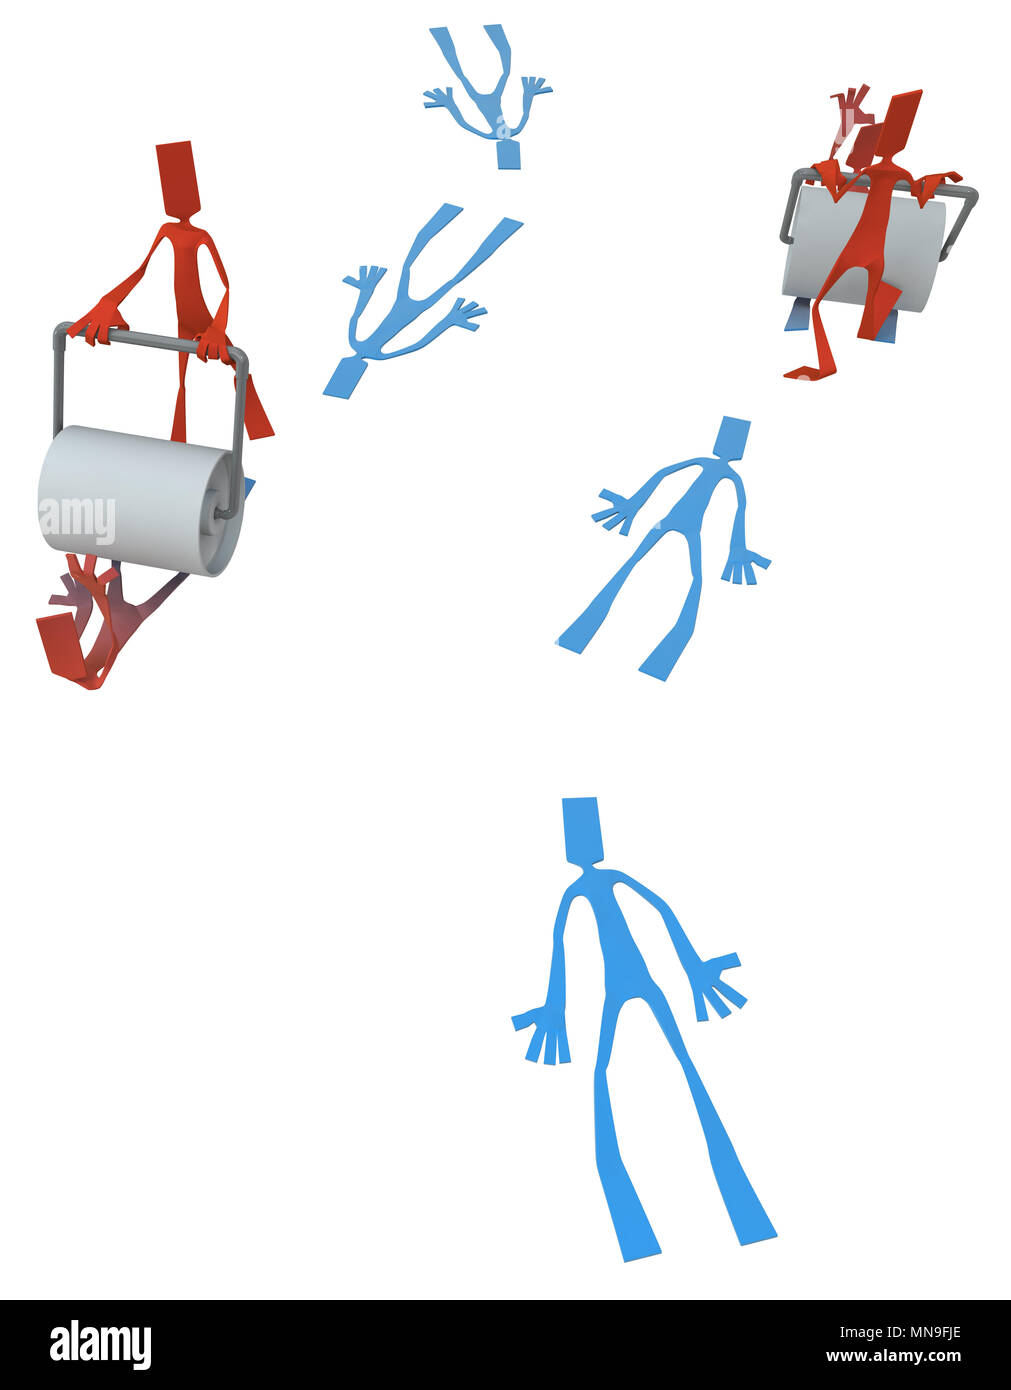 Paper man symbolic figures with road roller flattening others, 3d illustration, vertical, isolated - Stock Image